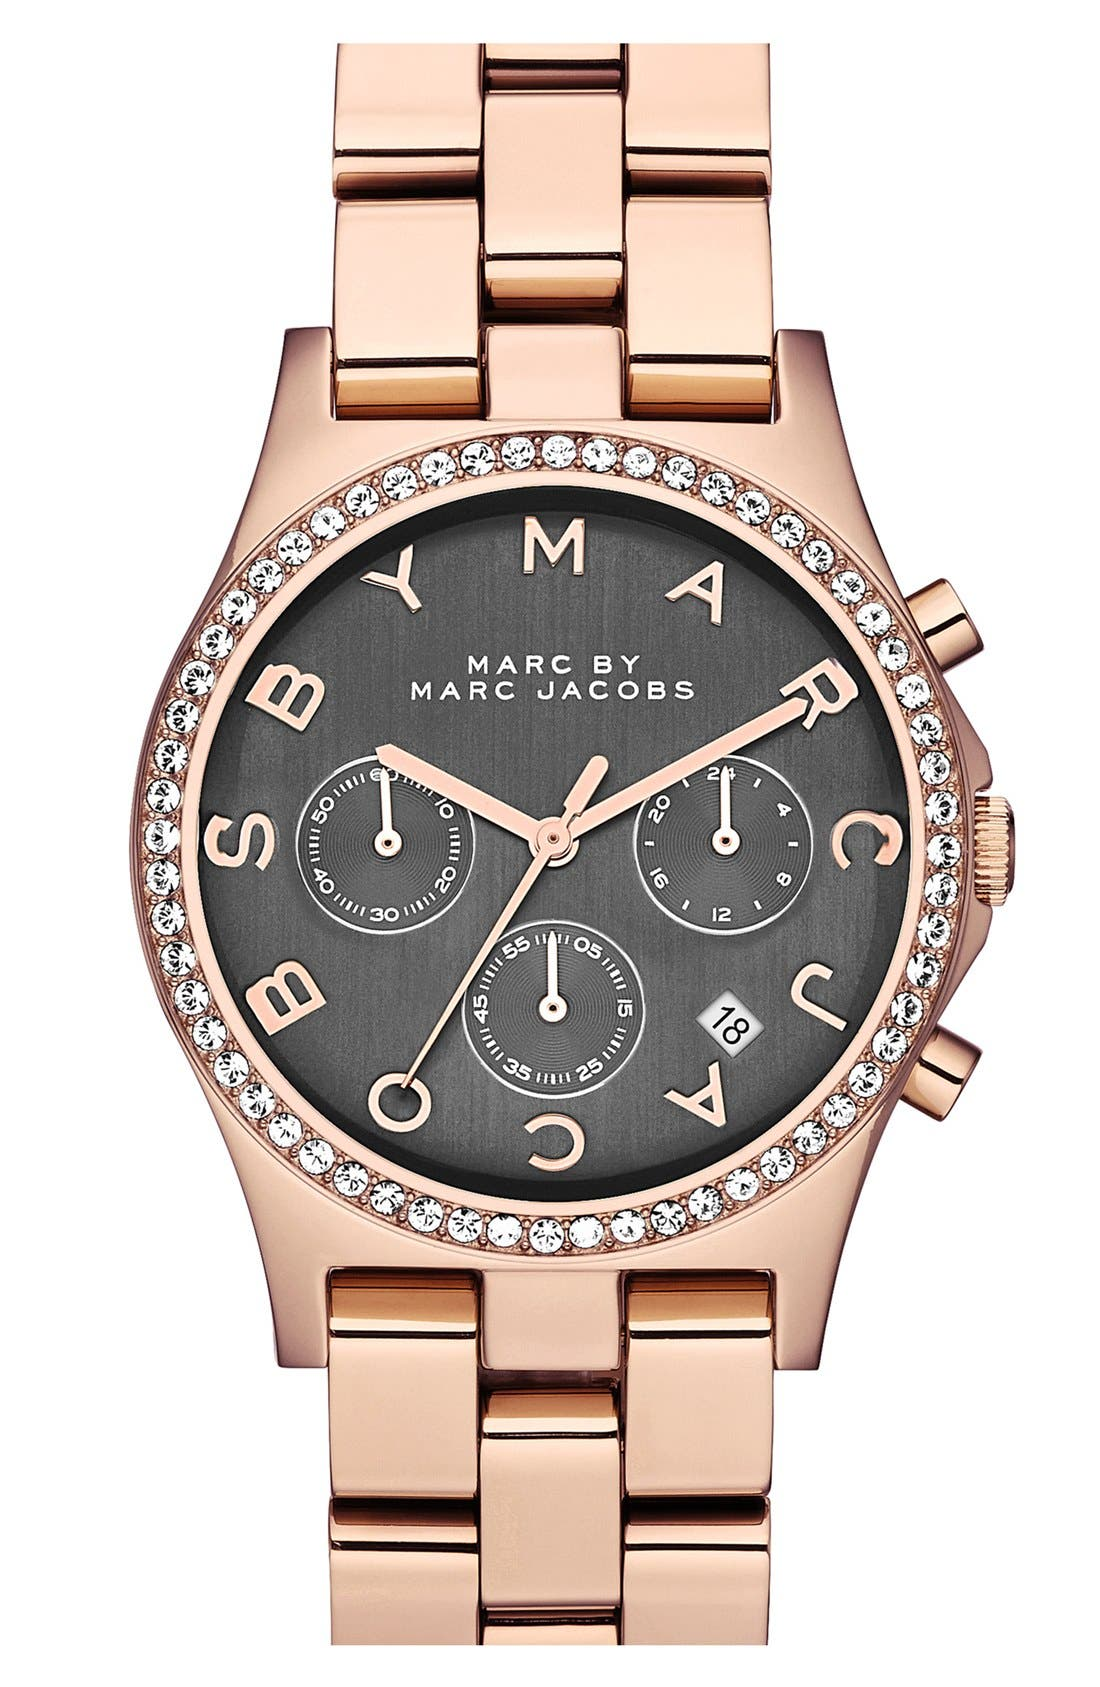 Main Image - MARC JACOBS 'Henry' Chronograph & Crystal Topring Watch, 40mm